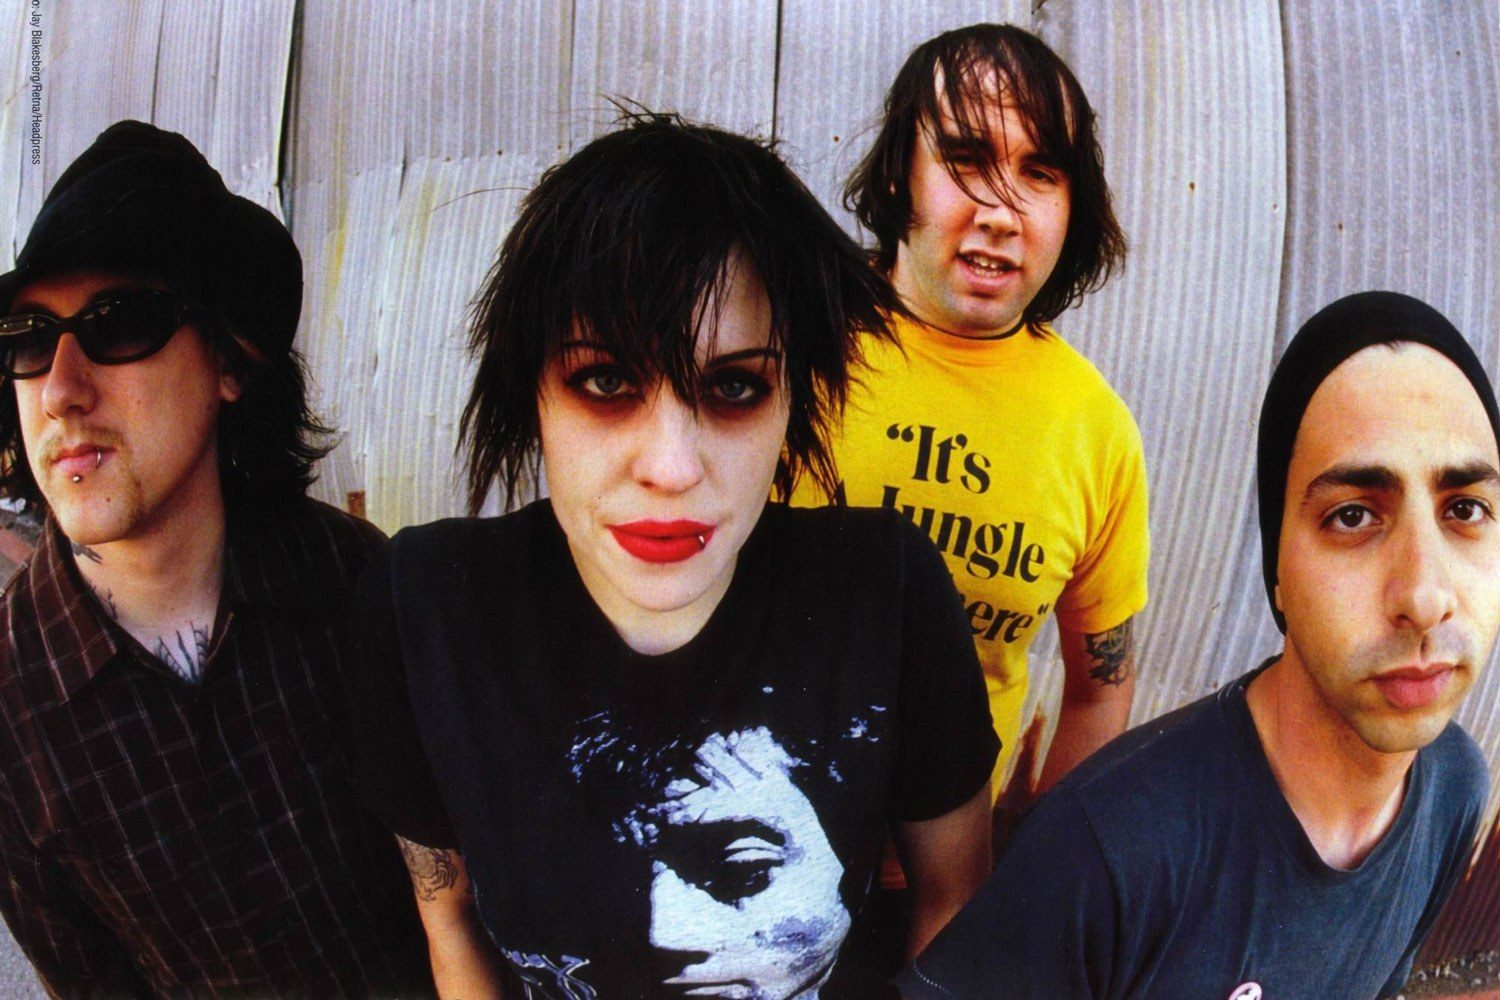 Brody Dalle says The Distillers are going to record a new album this spring